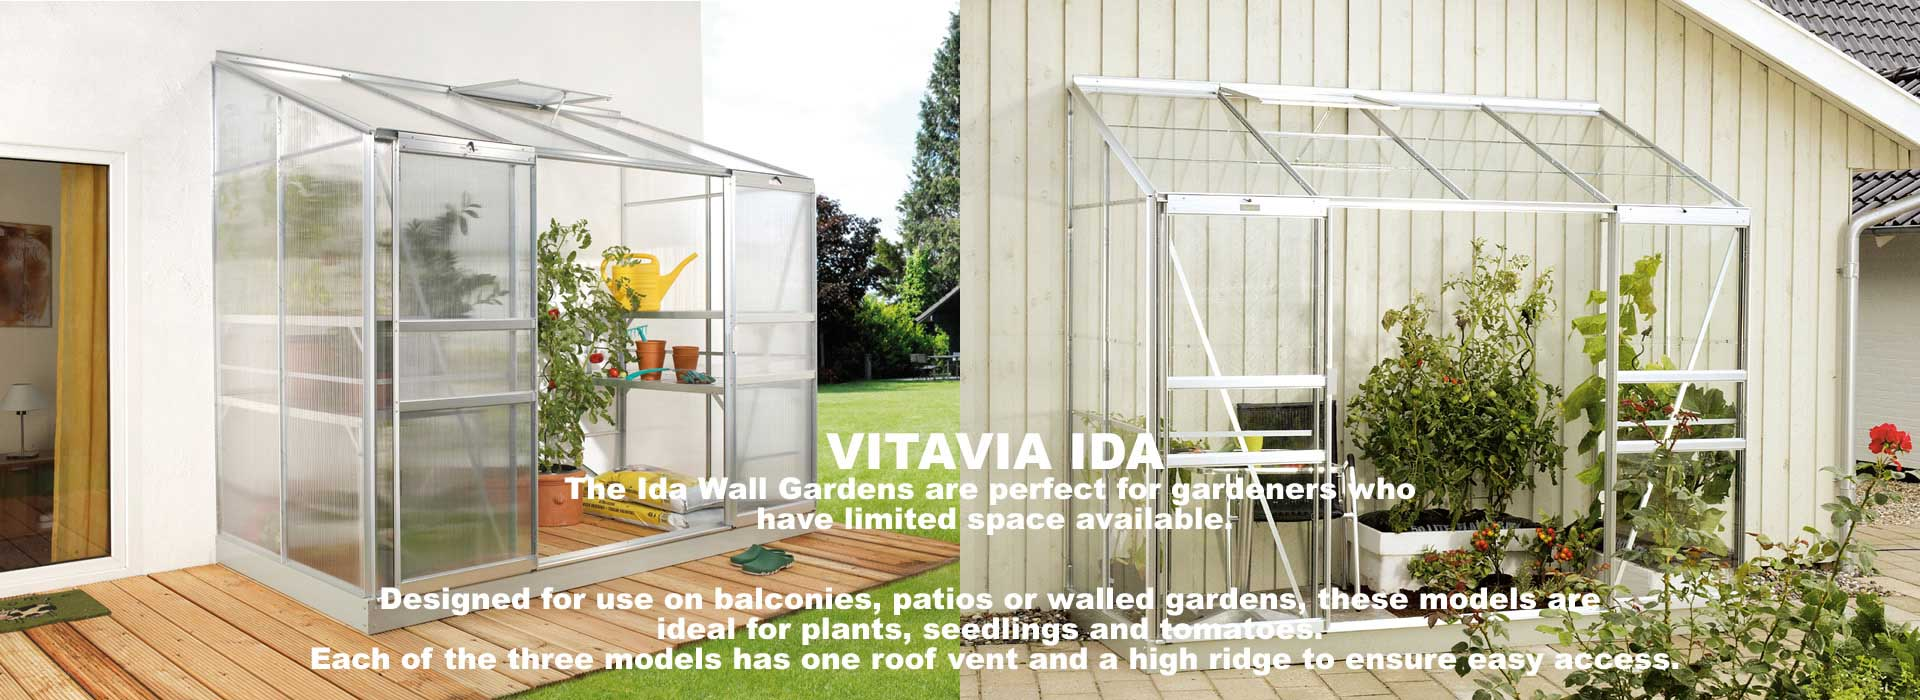 Vitavia Ida Lean-To Greenhouse